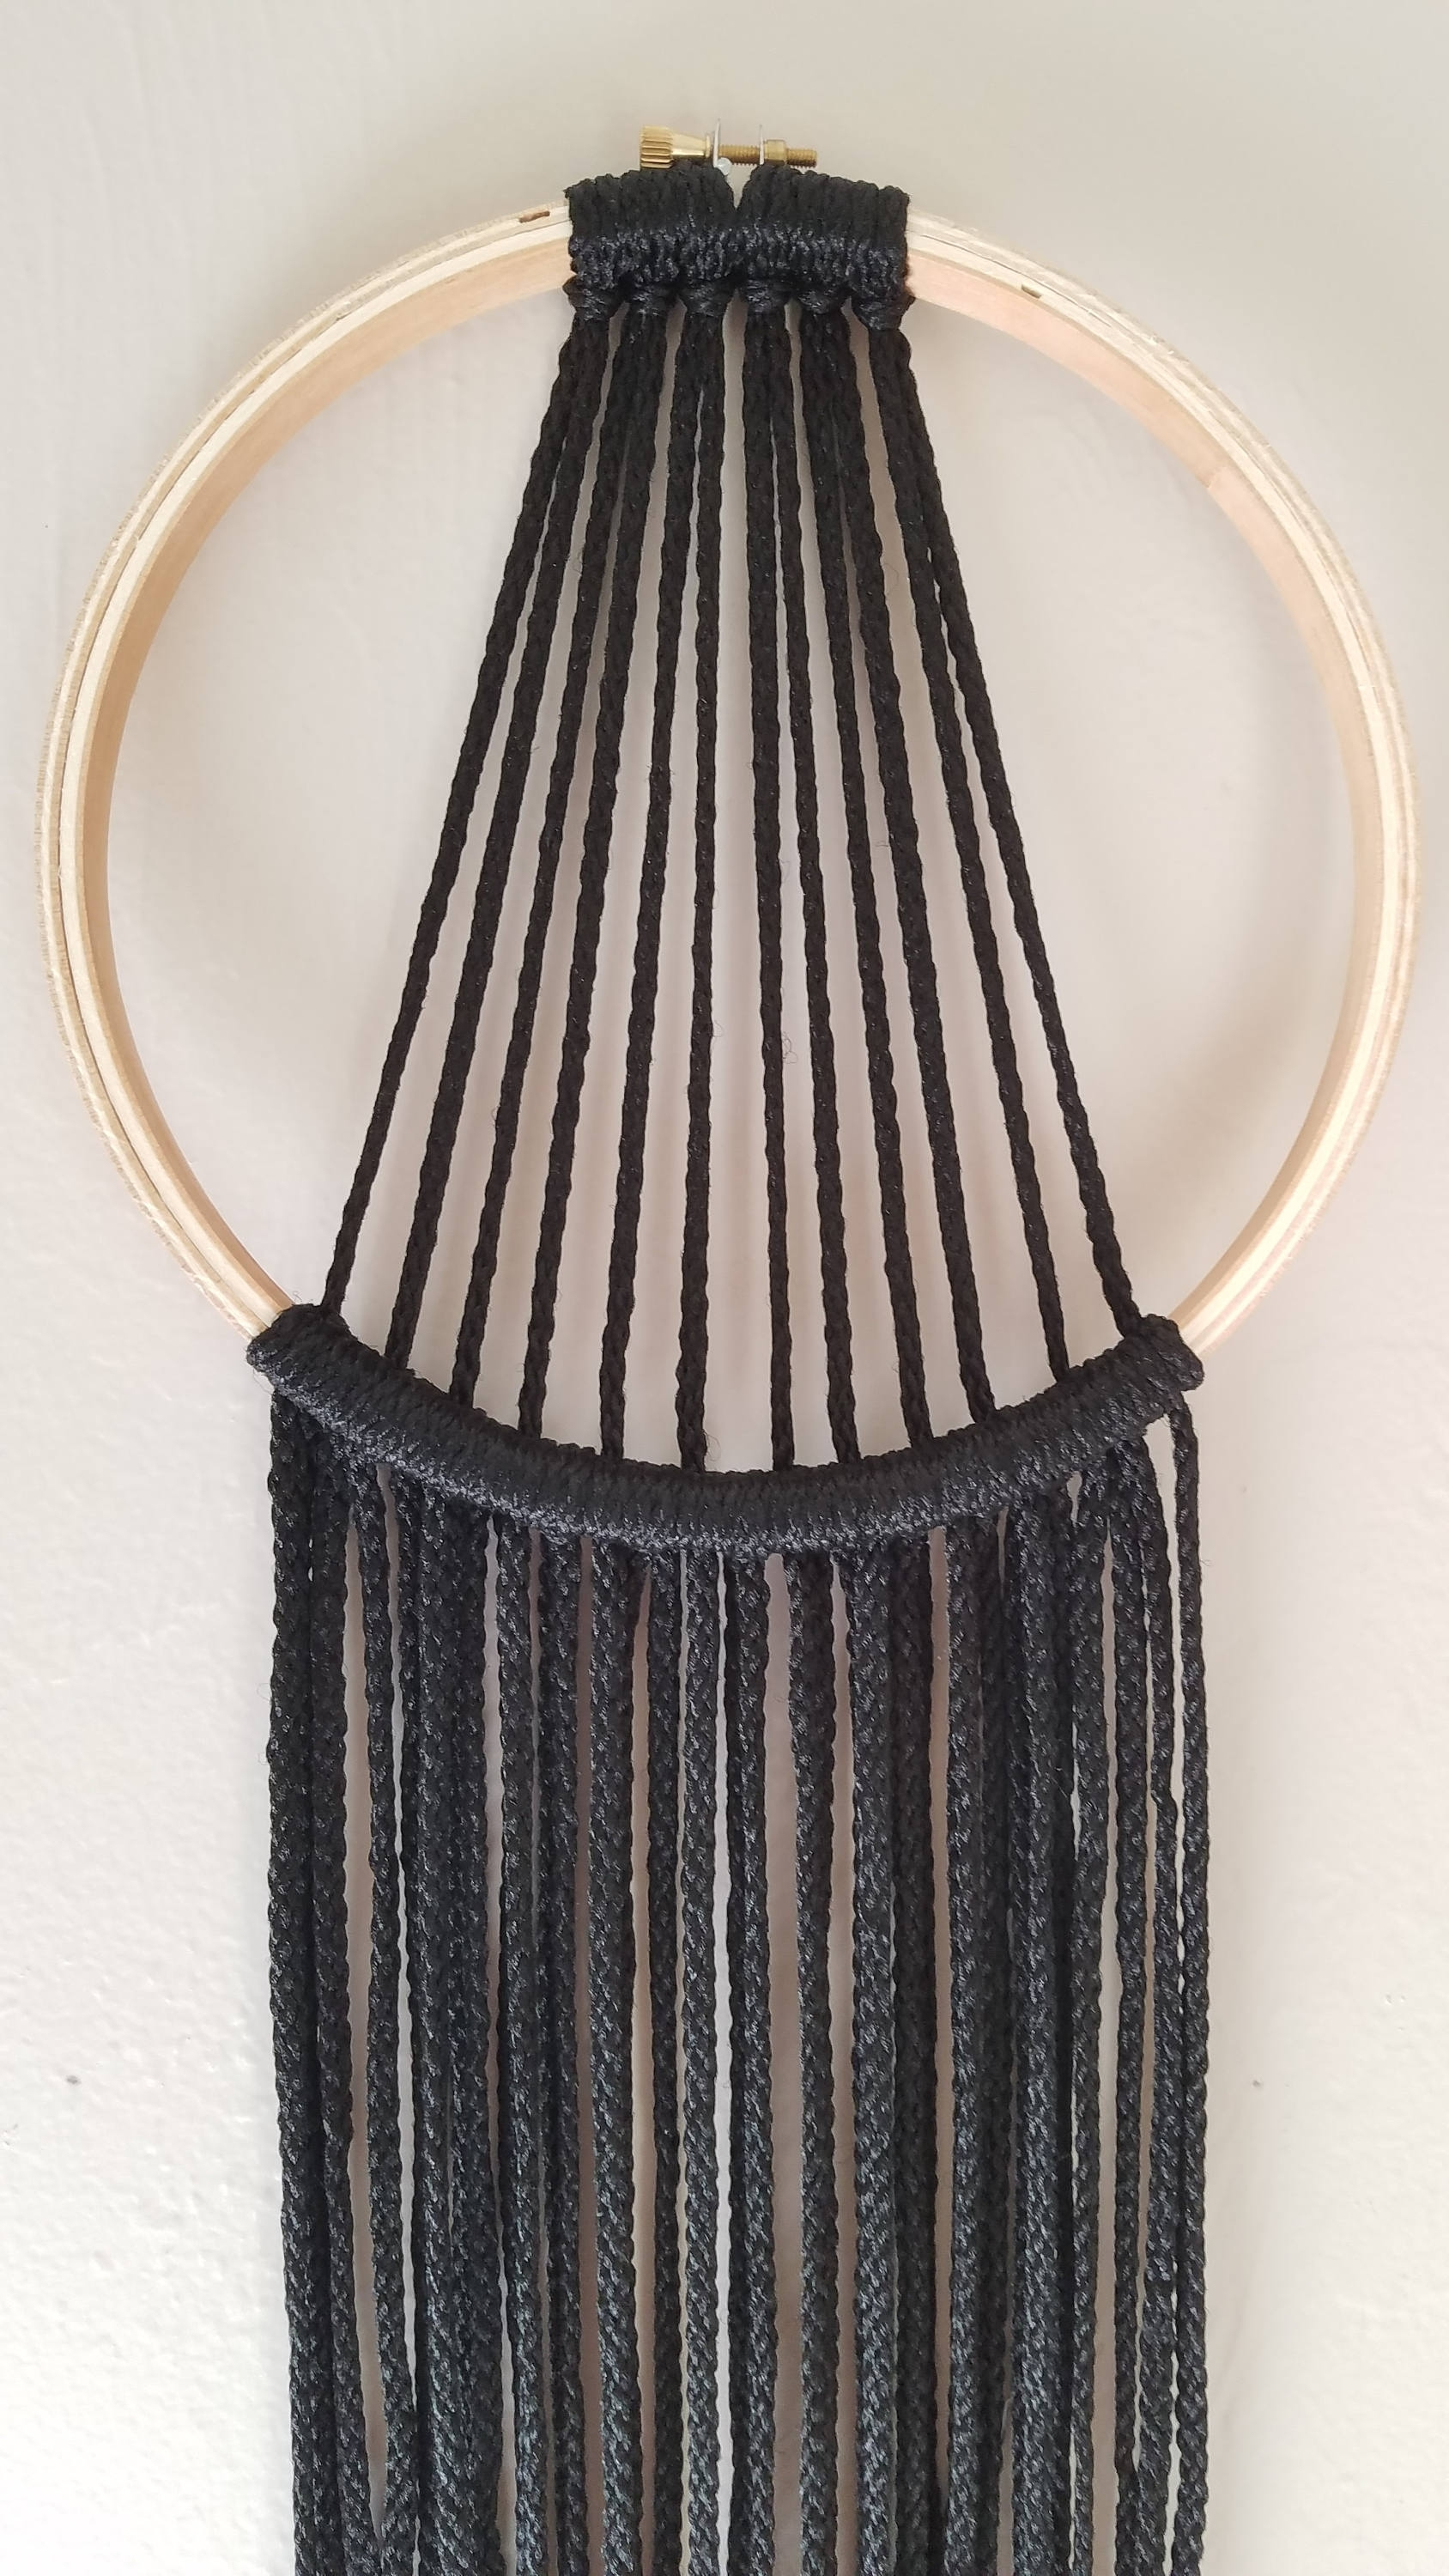 Boho Chic Wall Art Regarding Most Recent Minimalist Modern Macrame, Wall Hanging, Boho Chic, Wall Decor (View 3 of 15)